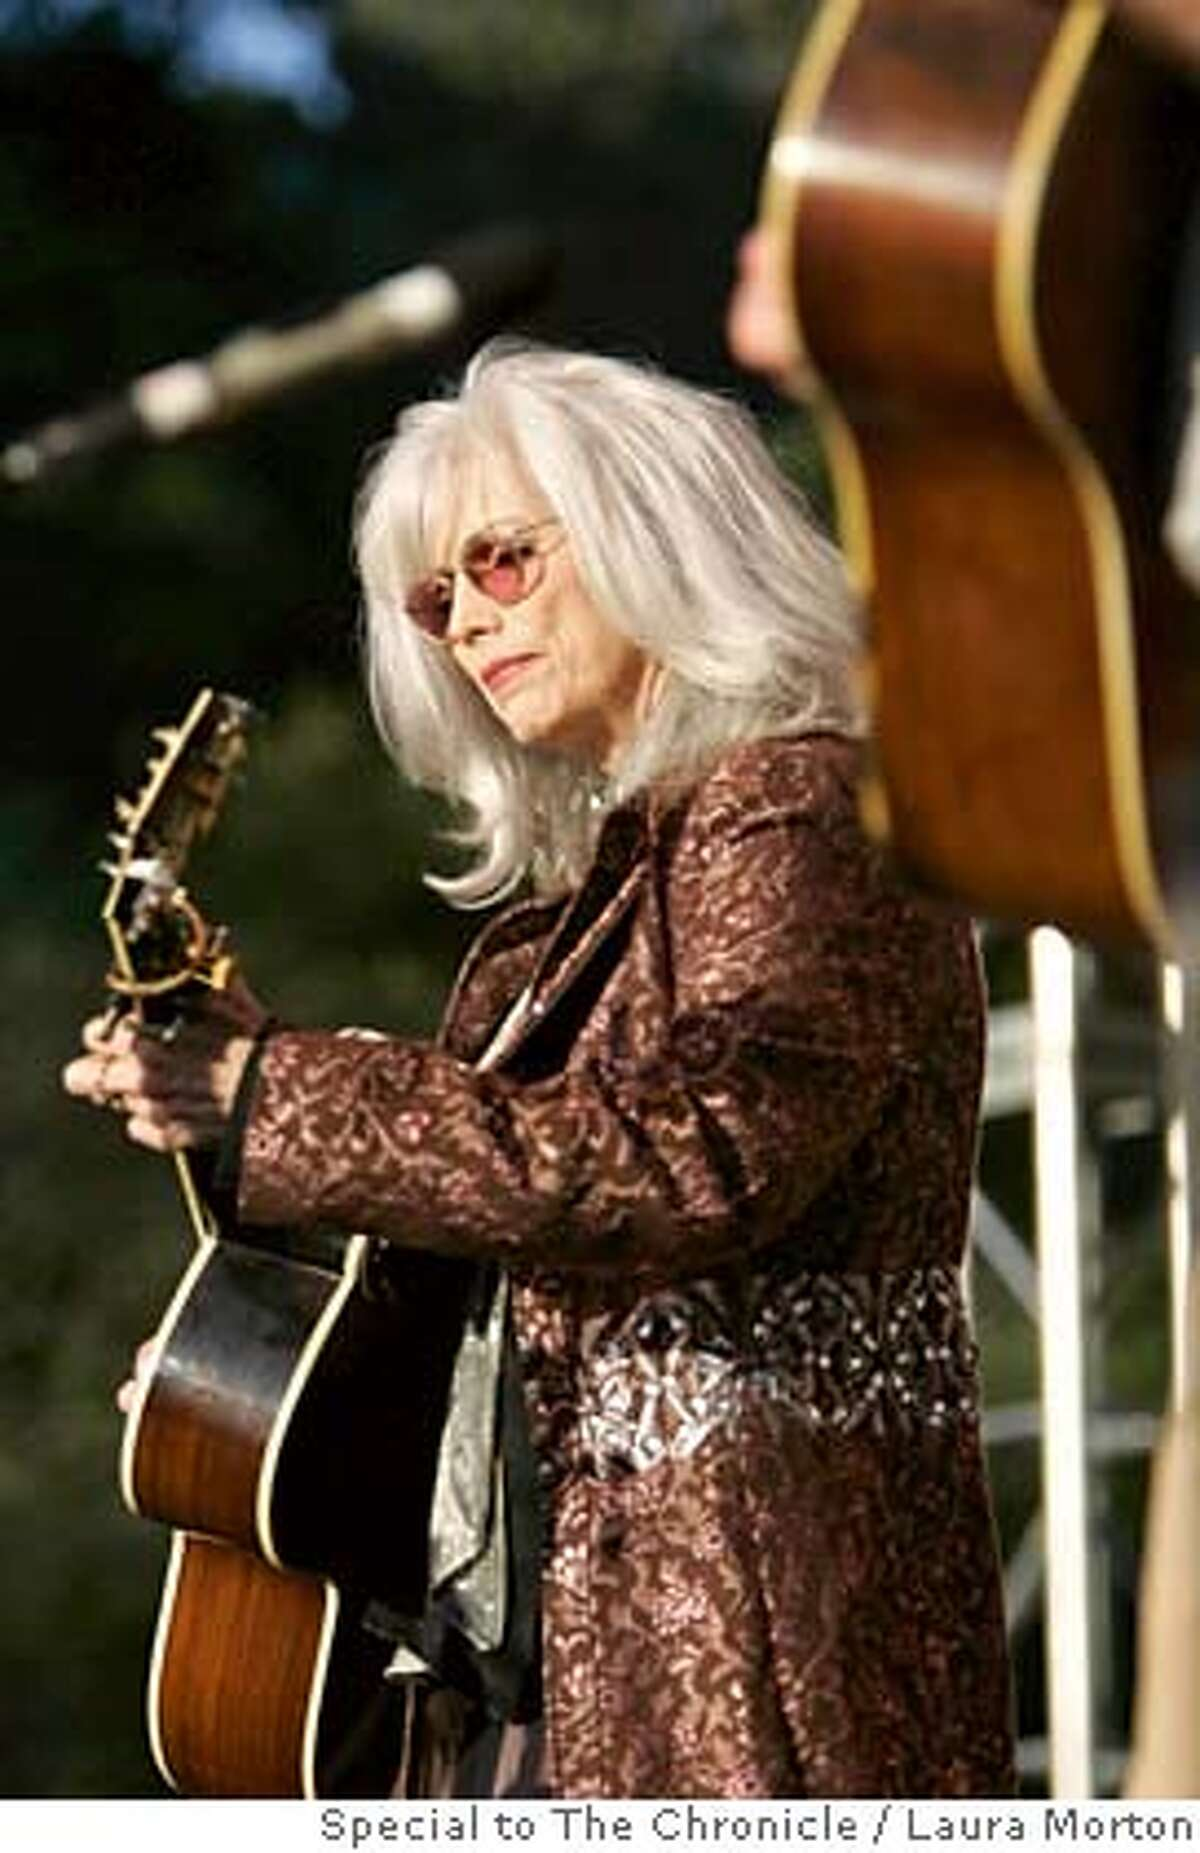 Emmylou Harris performs at the Hardly Strictly Bluegrass Festival in Golden Gate Park on Sunday.